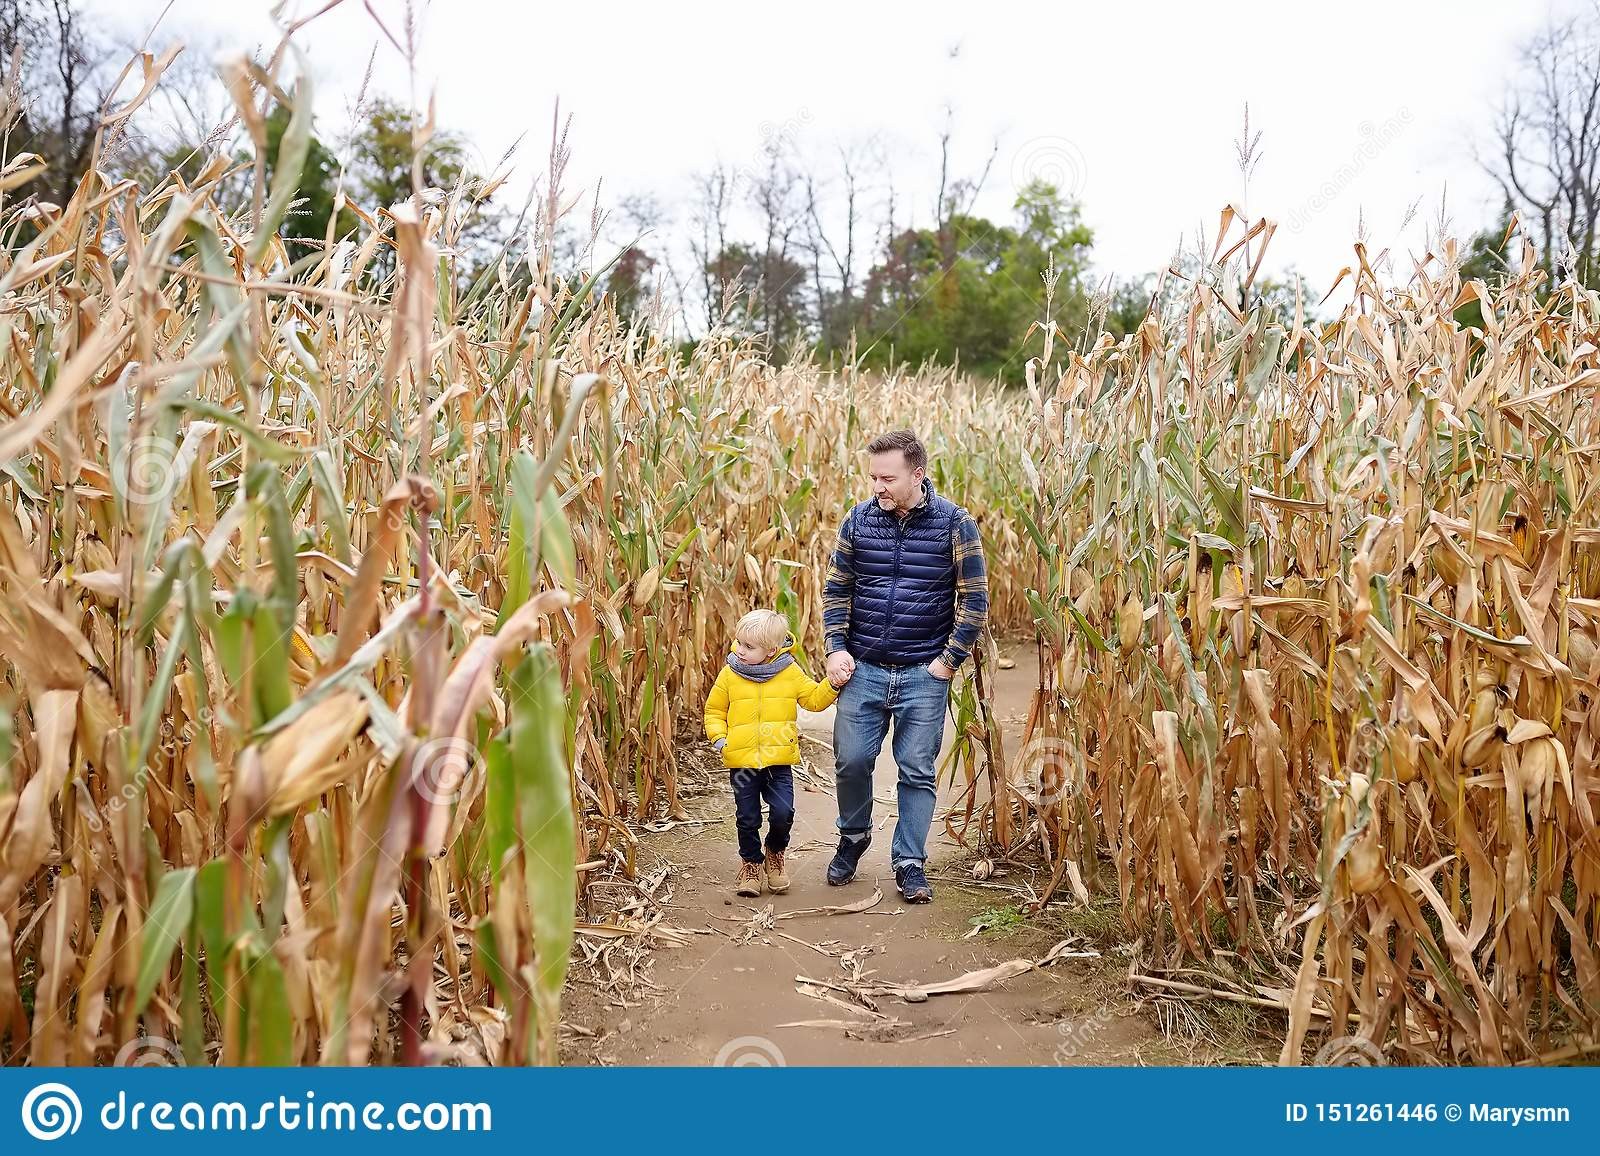 Little boy and his father having fun on pumpkin fair at autumn. Family walking among the dried corn stalks in a corn maze.